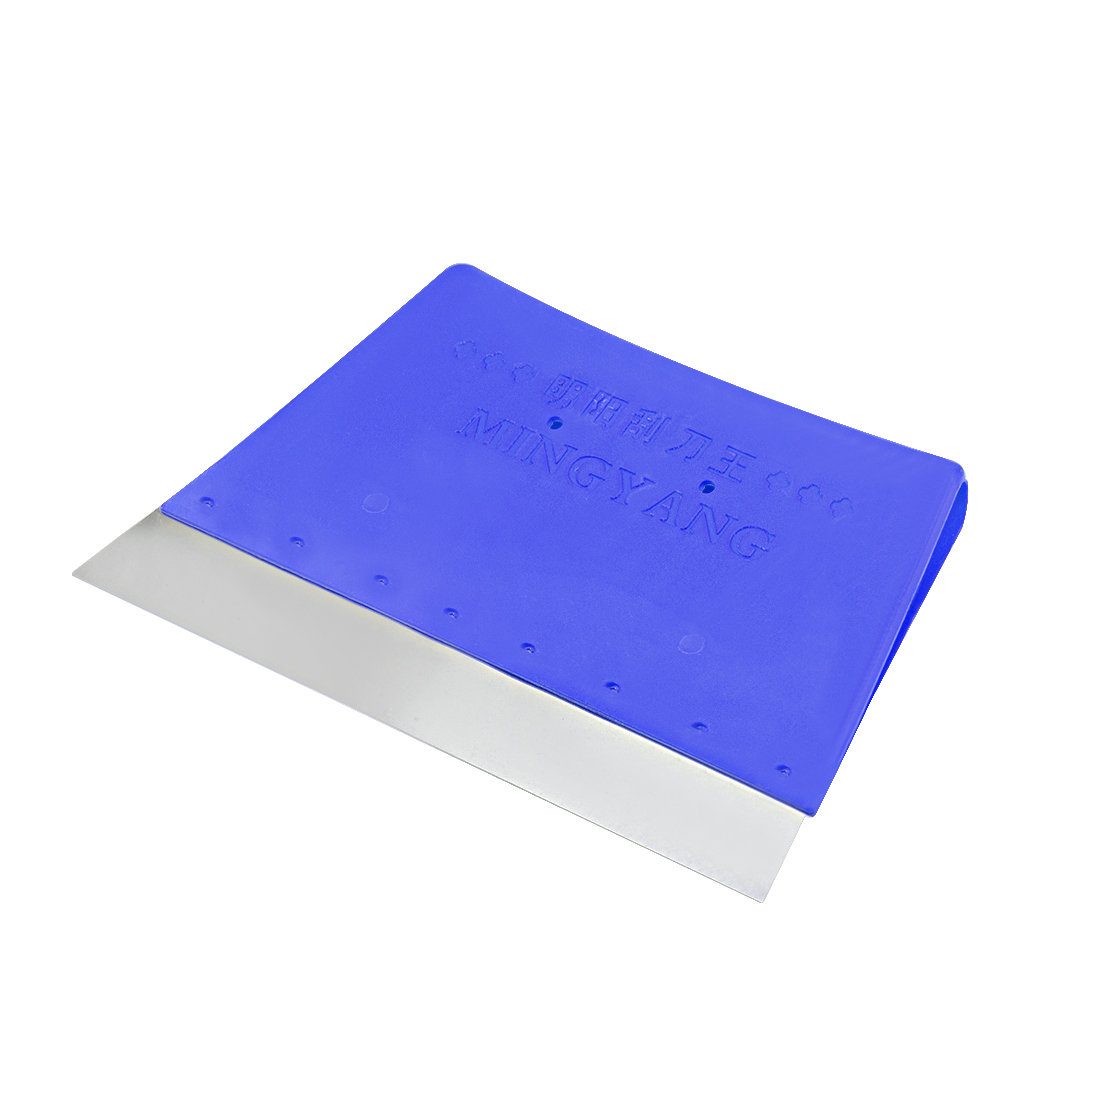 2x Scraper Board 165mm Carbon Steel Blade Plastic Handle for Surface Cleaning